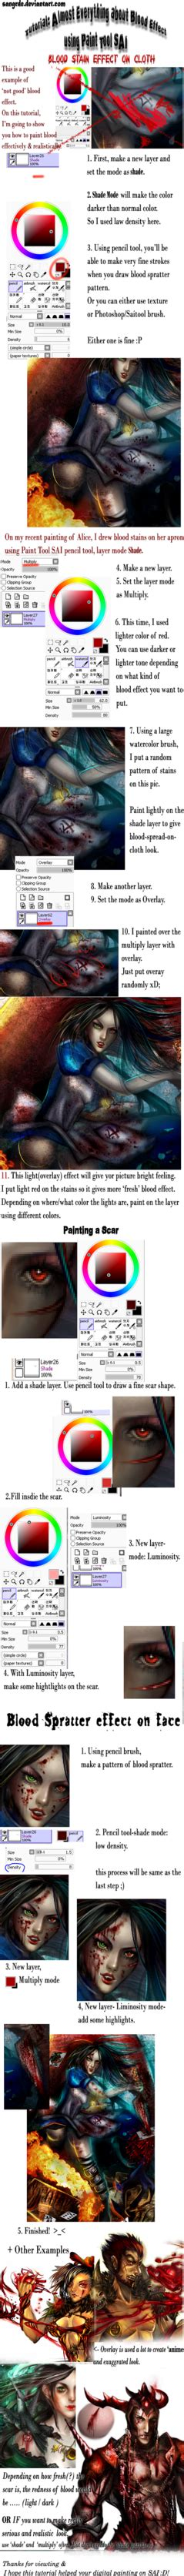 paint tool sai blood tutorial blood effect tutorial on paint tool sai by sangrde